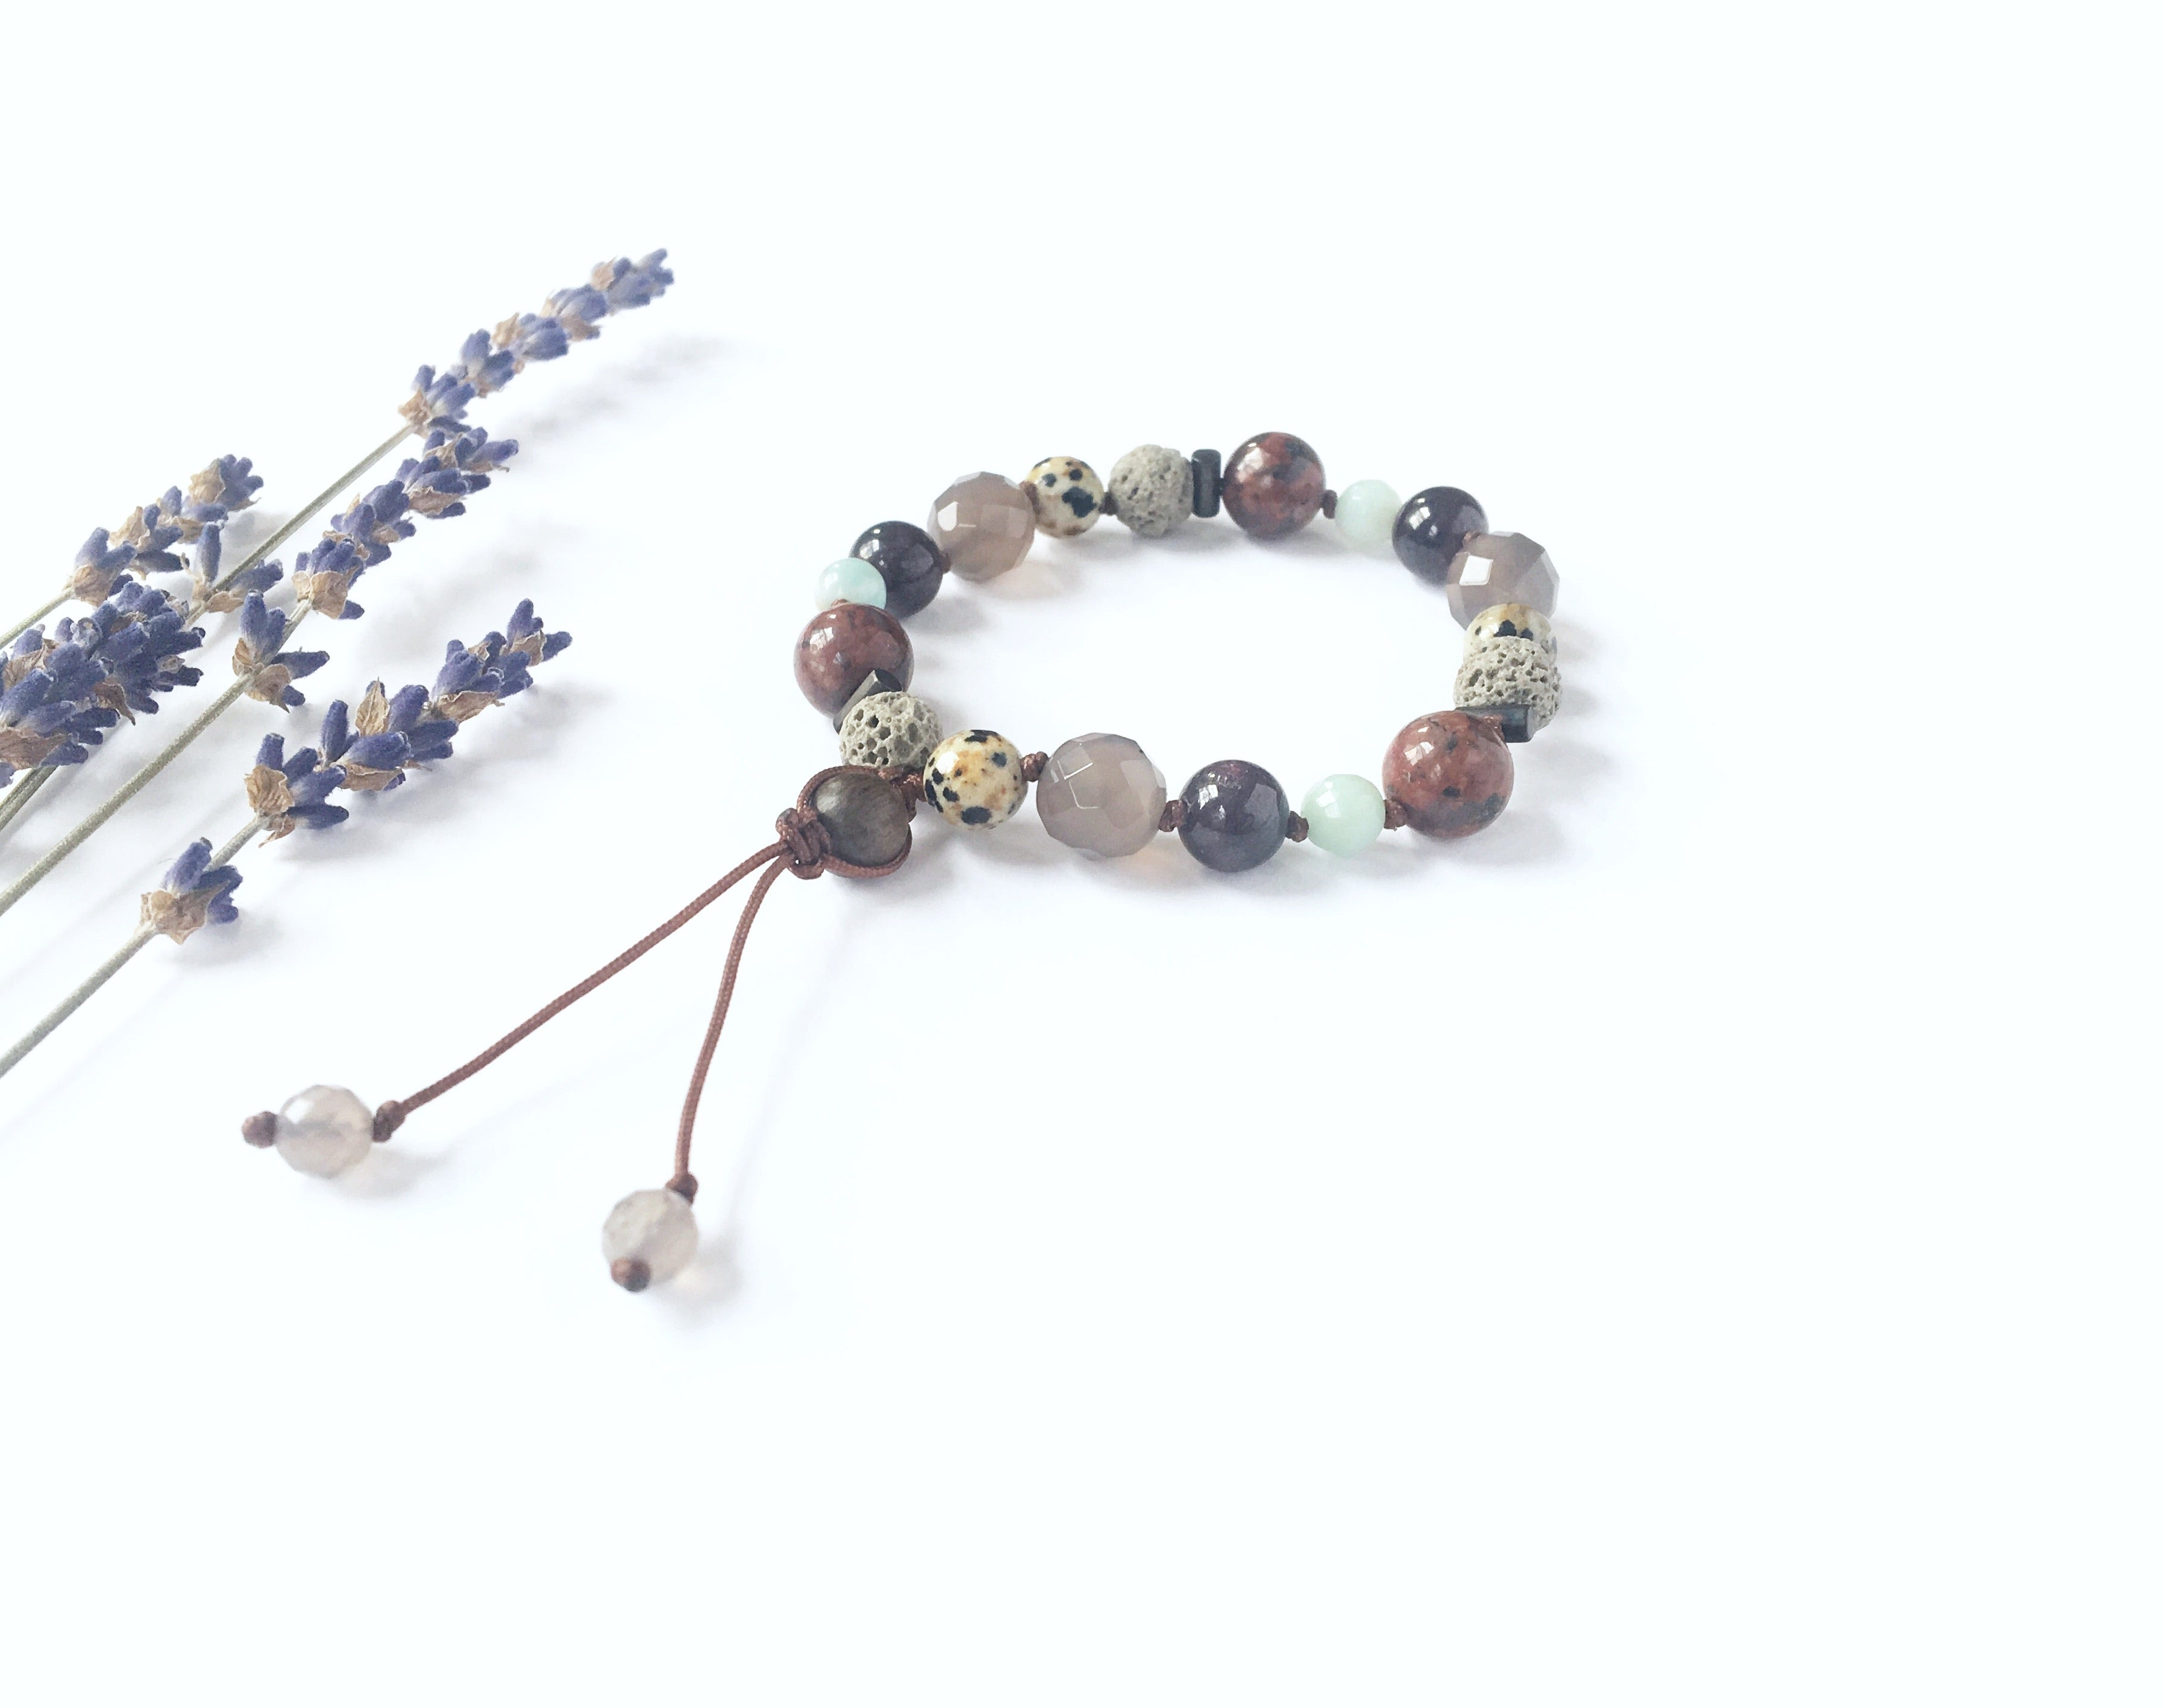 Gemstone and lava bead bracelet designed by Three Peas, alongside stems of dried lavender